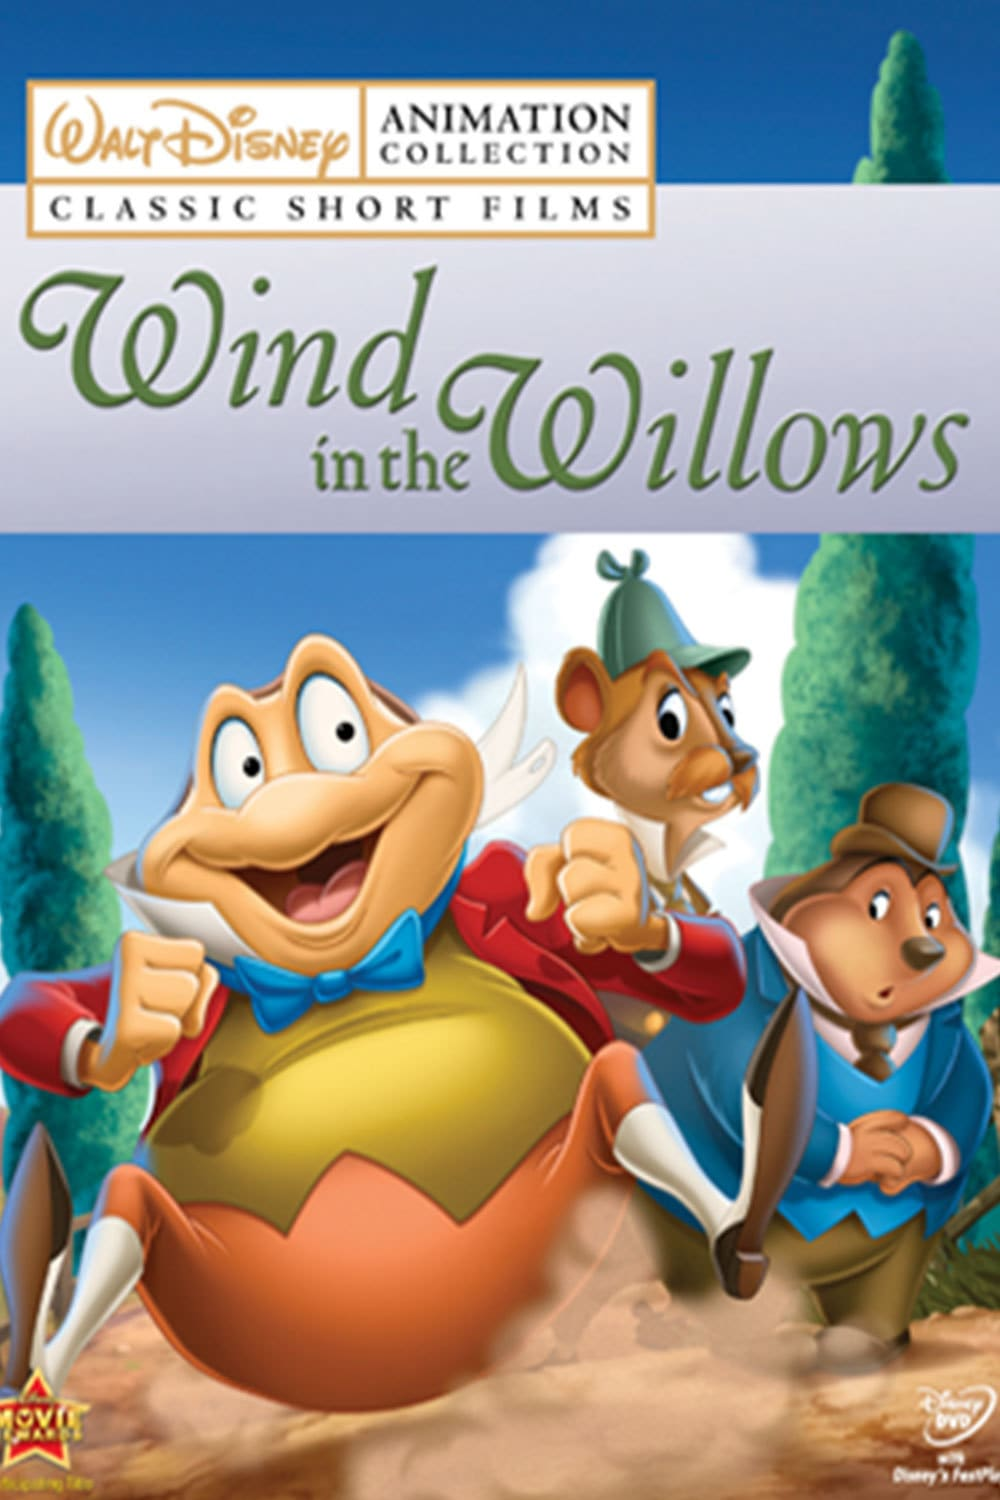 Disney Animation Collection Volume 5 Wind In The Willows